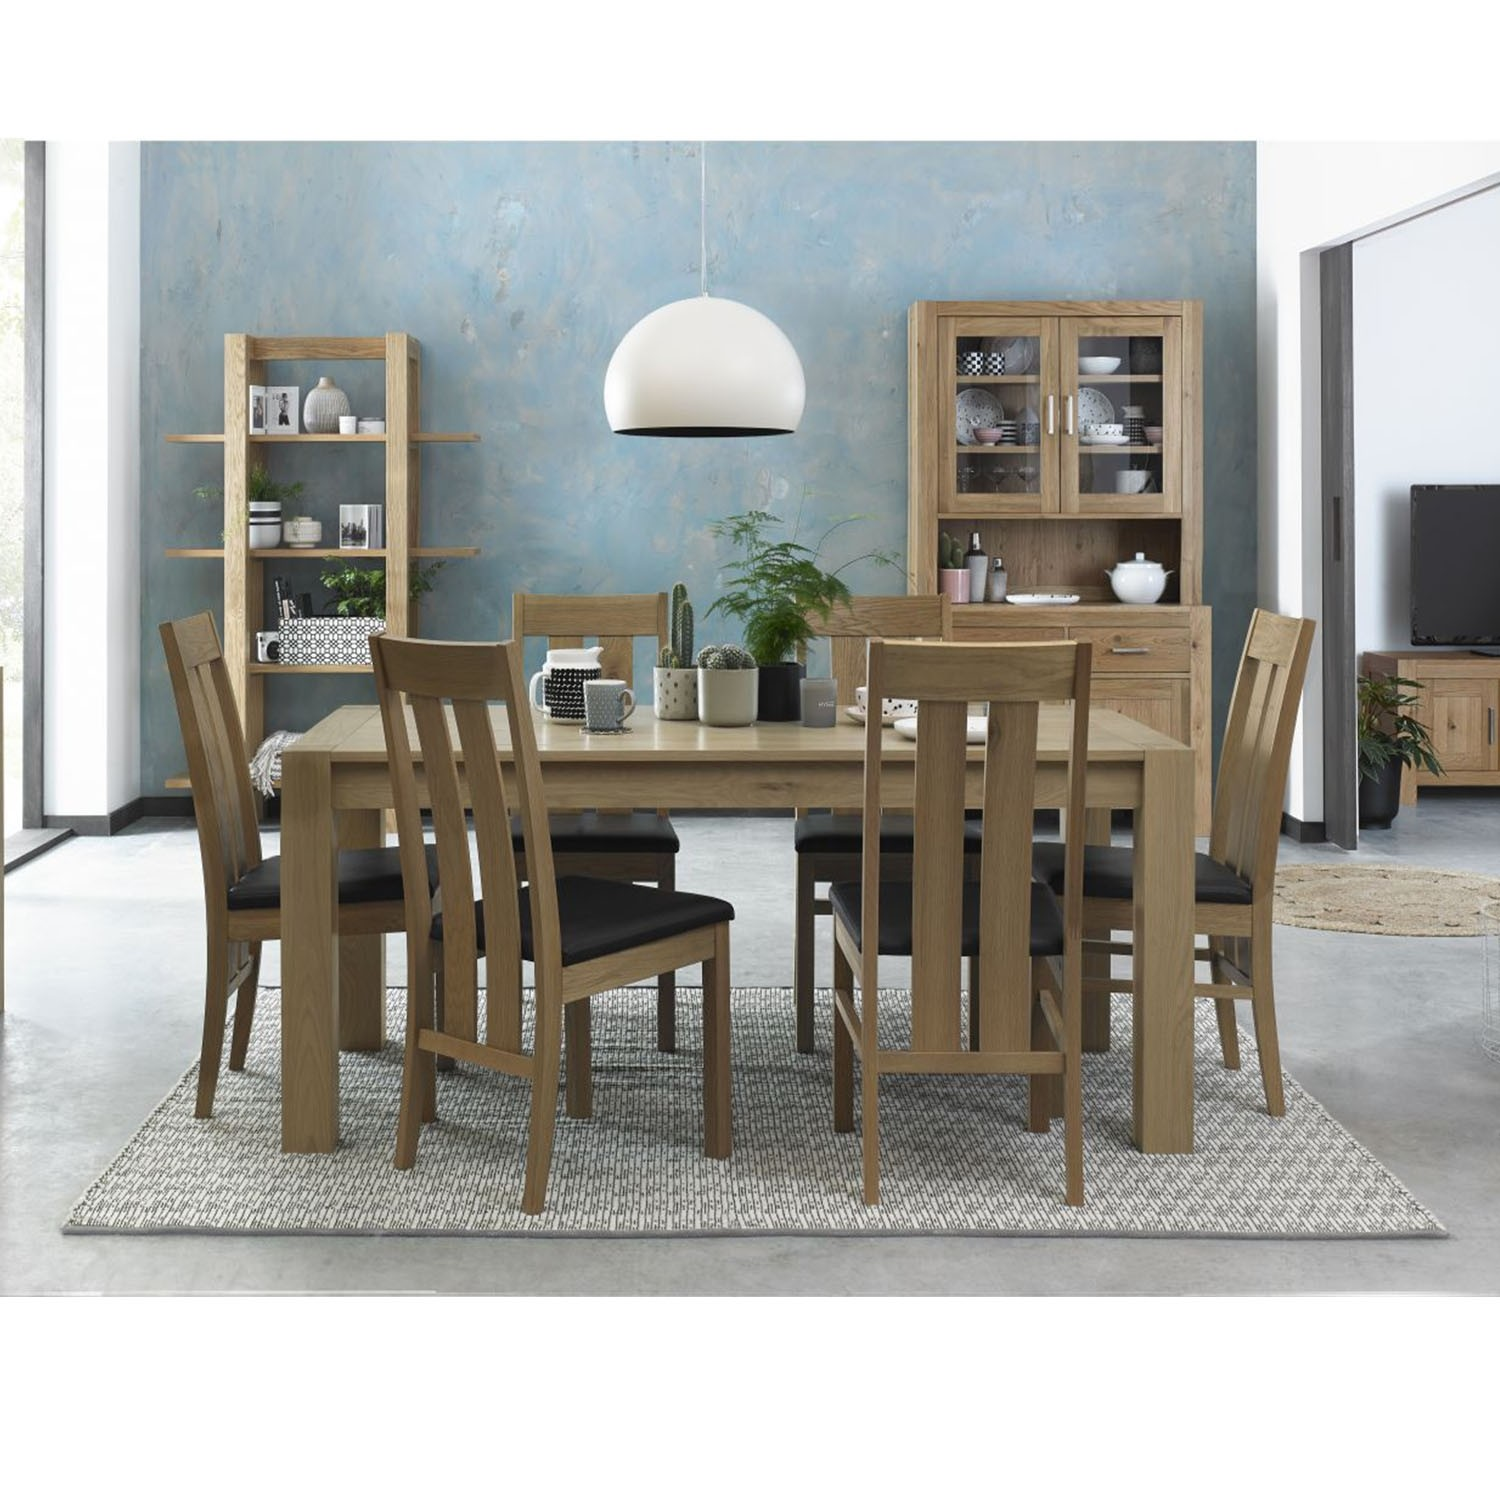 Peachy Toledo Extending Dining Table And Six Chairs Interior Design Ideas Philsoteloinfo